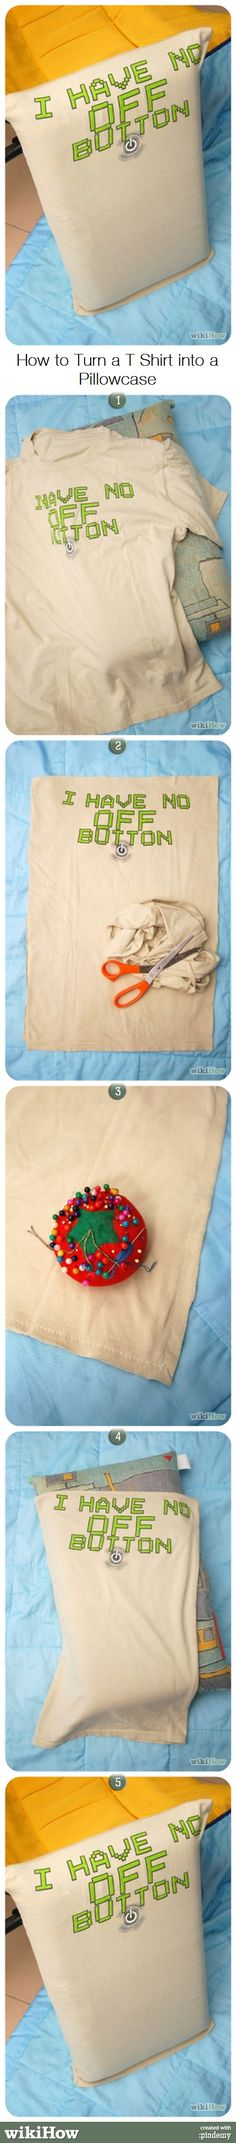 Another idea for what to do with all those Disney tees that have been long outgrown ... but you can't bear to part with!  How to Turn a T Shirt into a Pillowcase